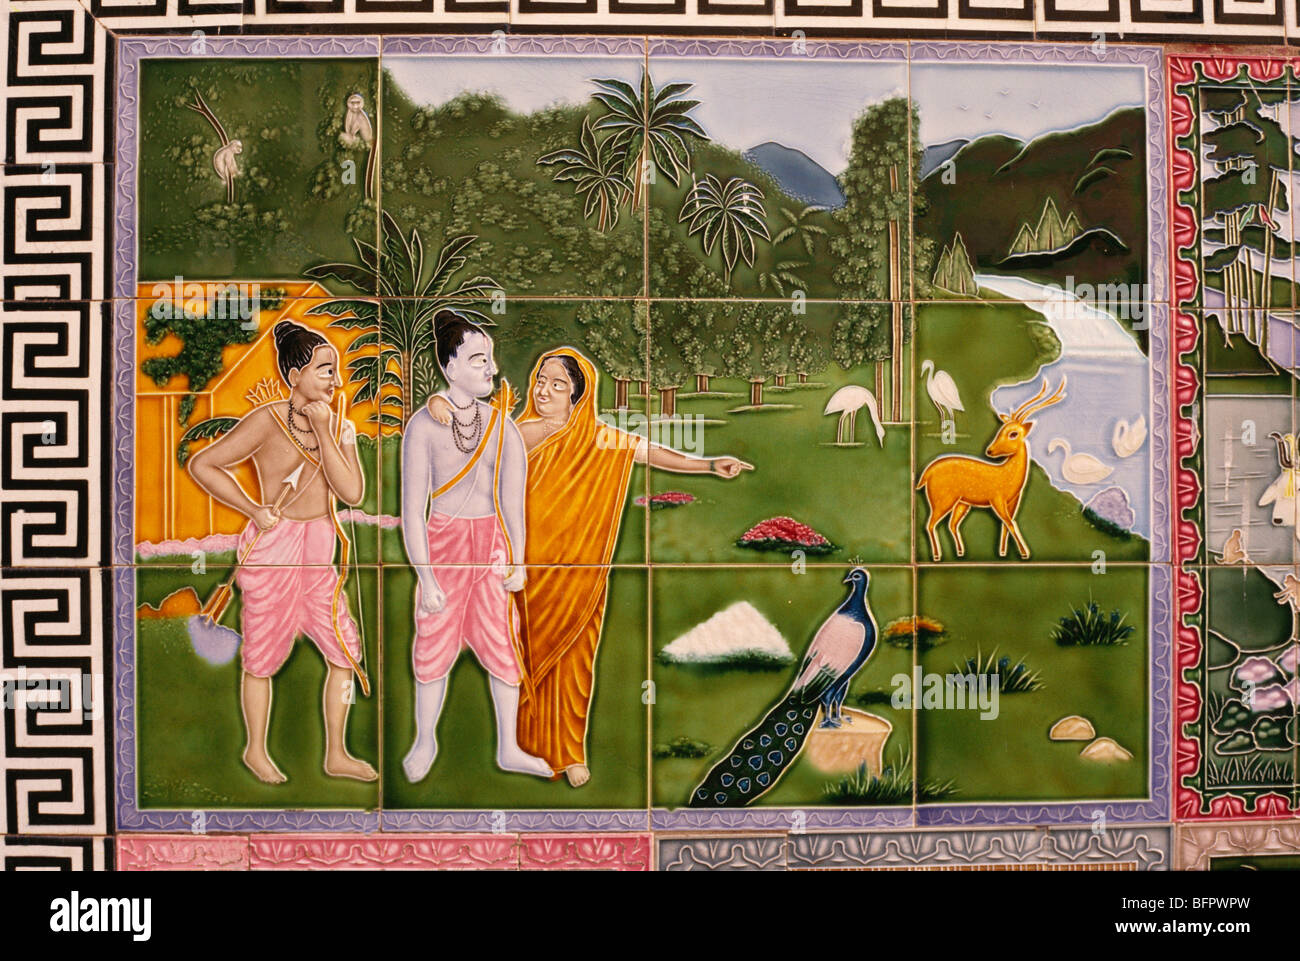 Hpa 66530 ramayana scene on ceramic tiles india stock photo hpa 66530 ramayana scene on ceramic tiles india dailygadgetfo Gallery